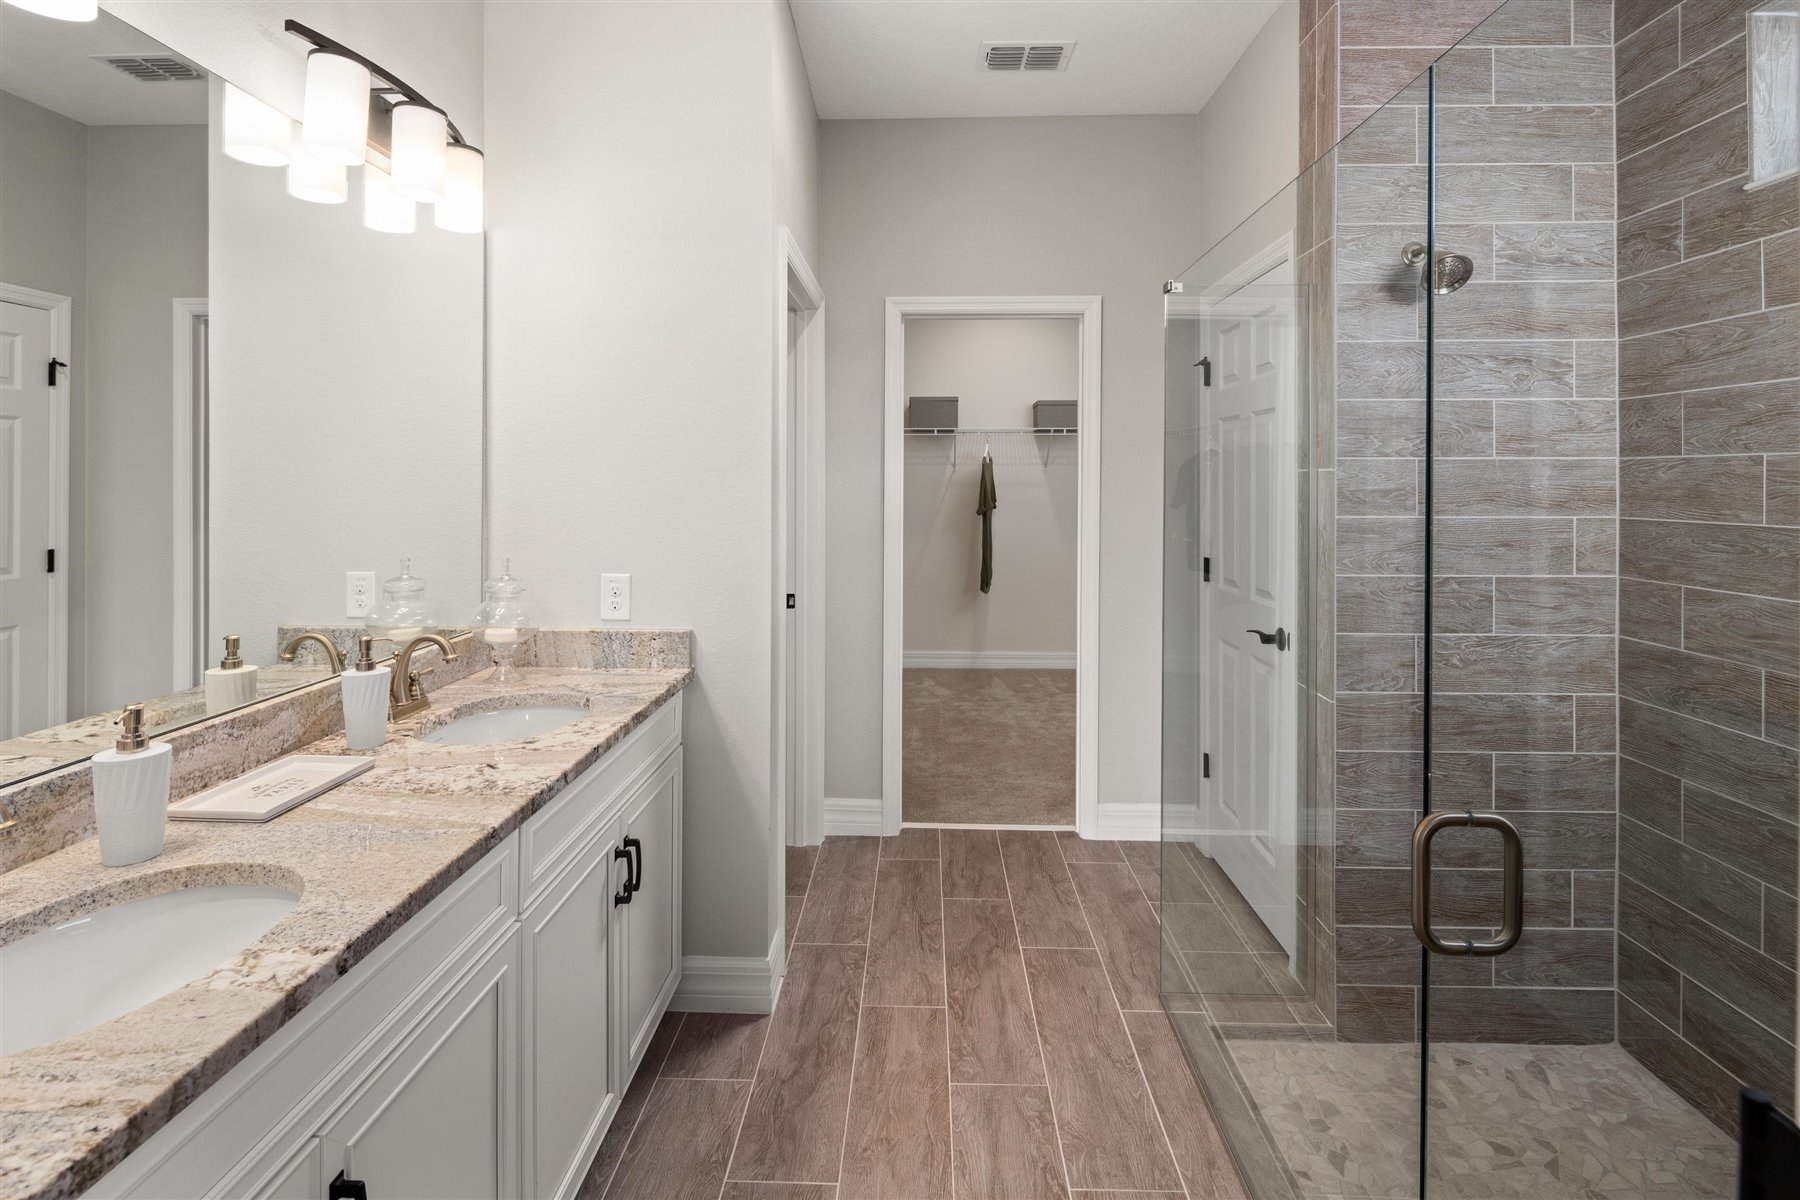 Crescent Plan Bath at Waterbrooke in Clermont Florida by Mattamy Homes